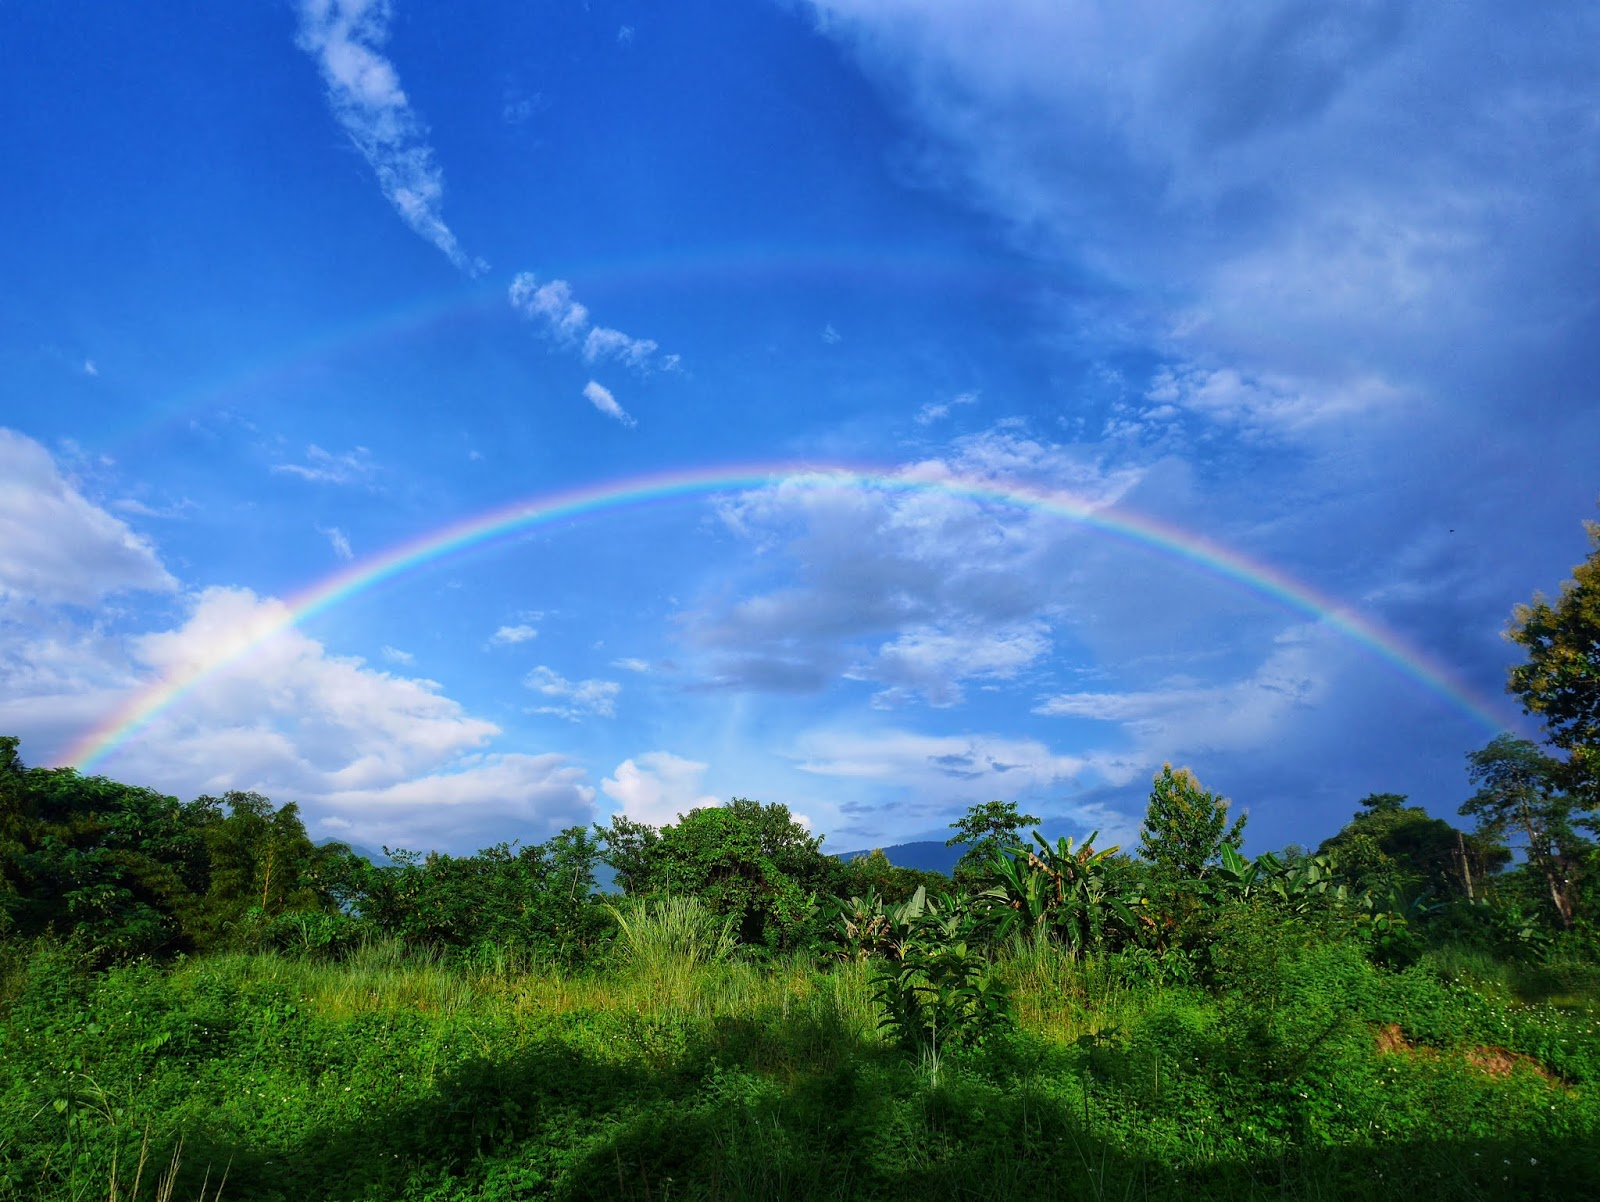 a double rainbow over the jungle in Vang Vieng, Laos